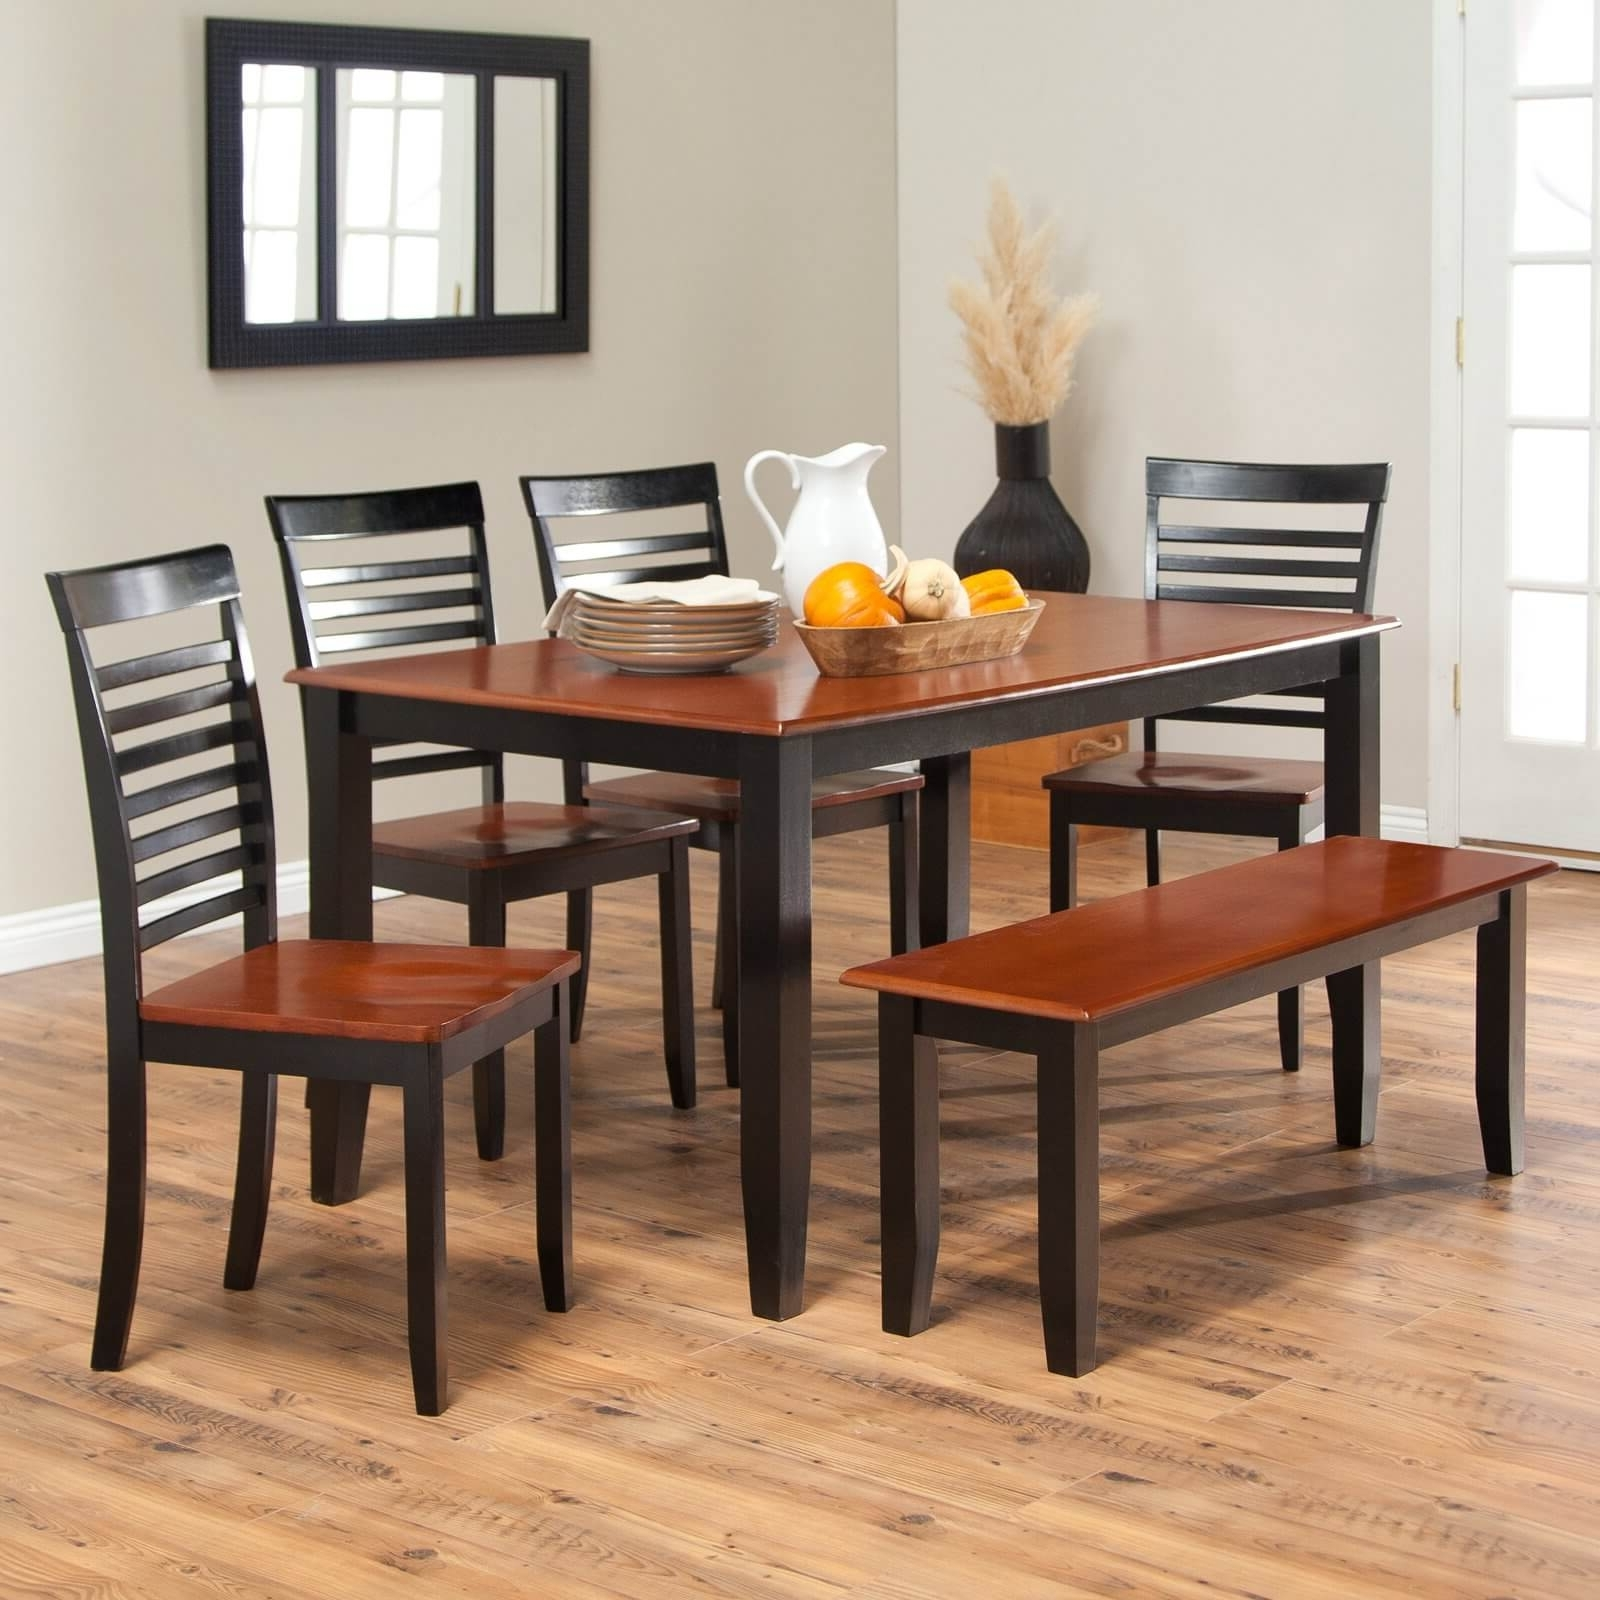 Well Liked 26 Dining Room Sets (Big And Small) With Bench Seating (2018) With 6 Seat Dining Table Sets (View 24 of 25)